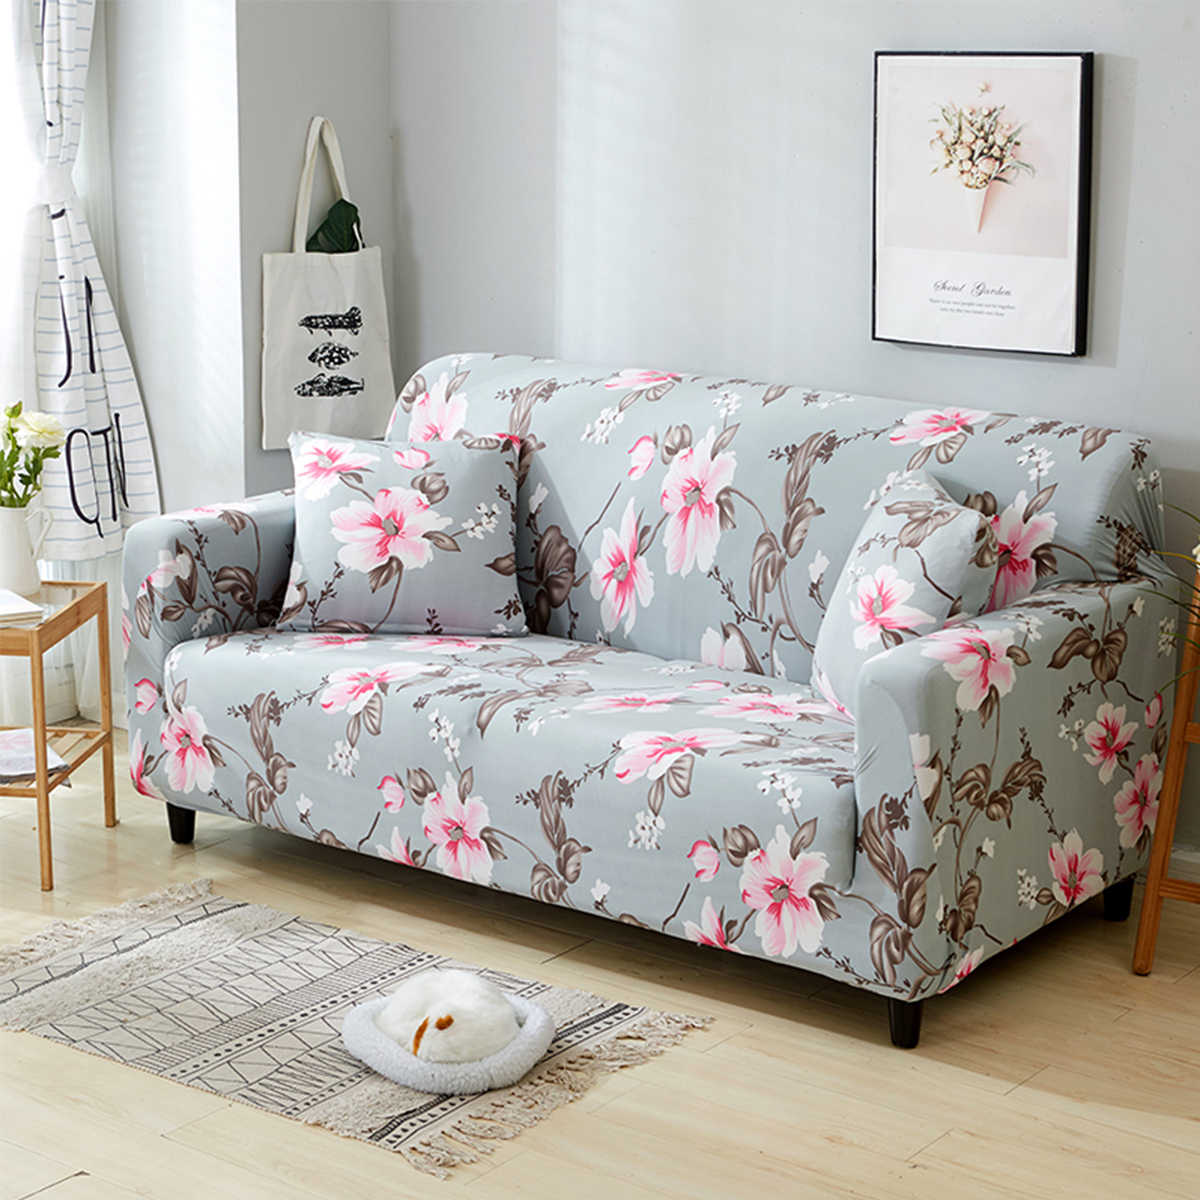 Enjoyable 1 2 3 4 Peony Seater Sofa Funiture Cover Chair Couch Protect Caraccident5 Cool Chair Designs And Ideas Caraccident5Info